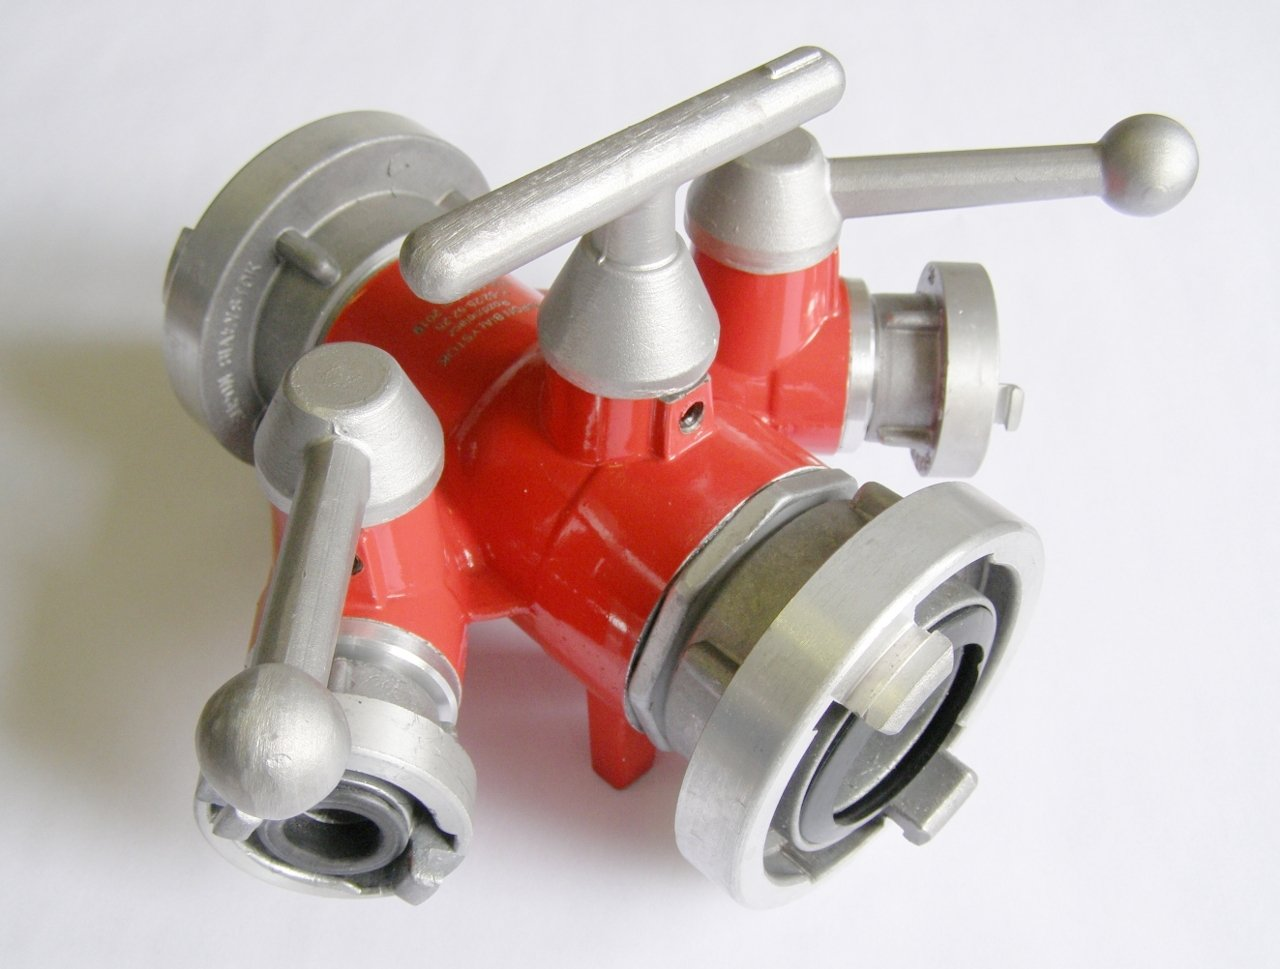 Distributor with ball valve B – CBC